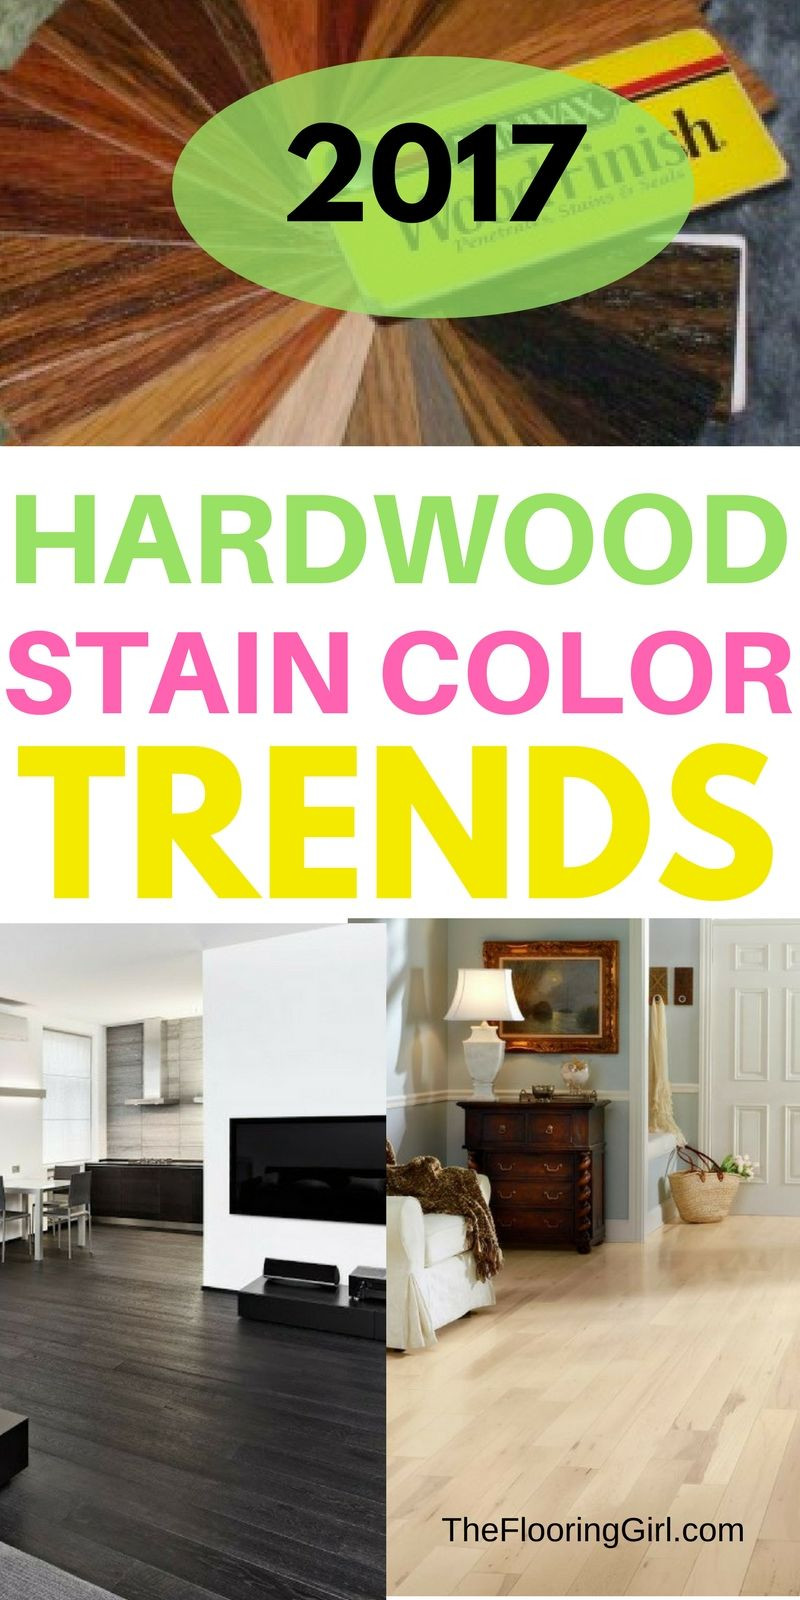 hardwood floor repair near me of hardwood flooring stain color trends 2018 more from the flooring with hardwood flooring stain color trends for 2017 hardwood colors that are in style theflooringgirl com